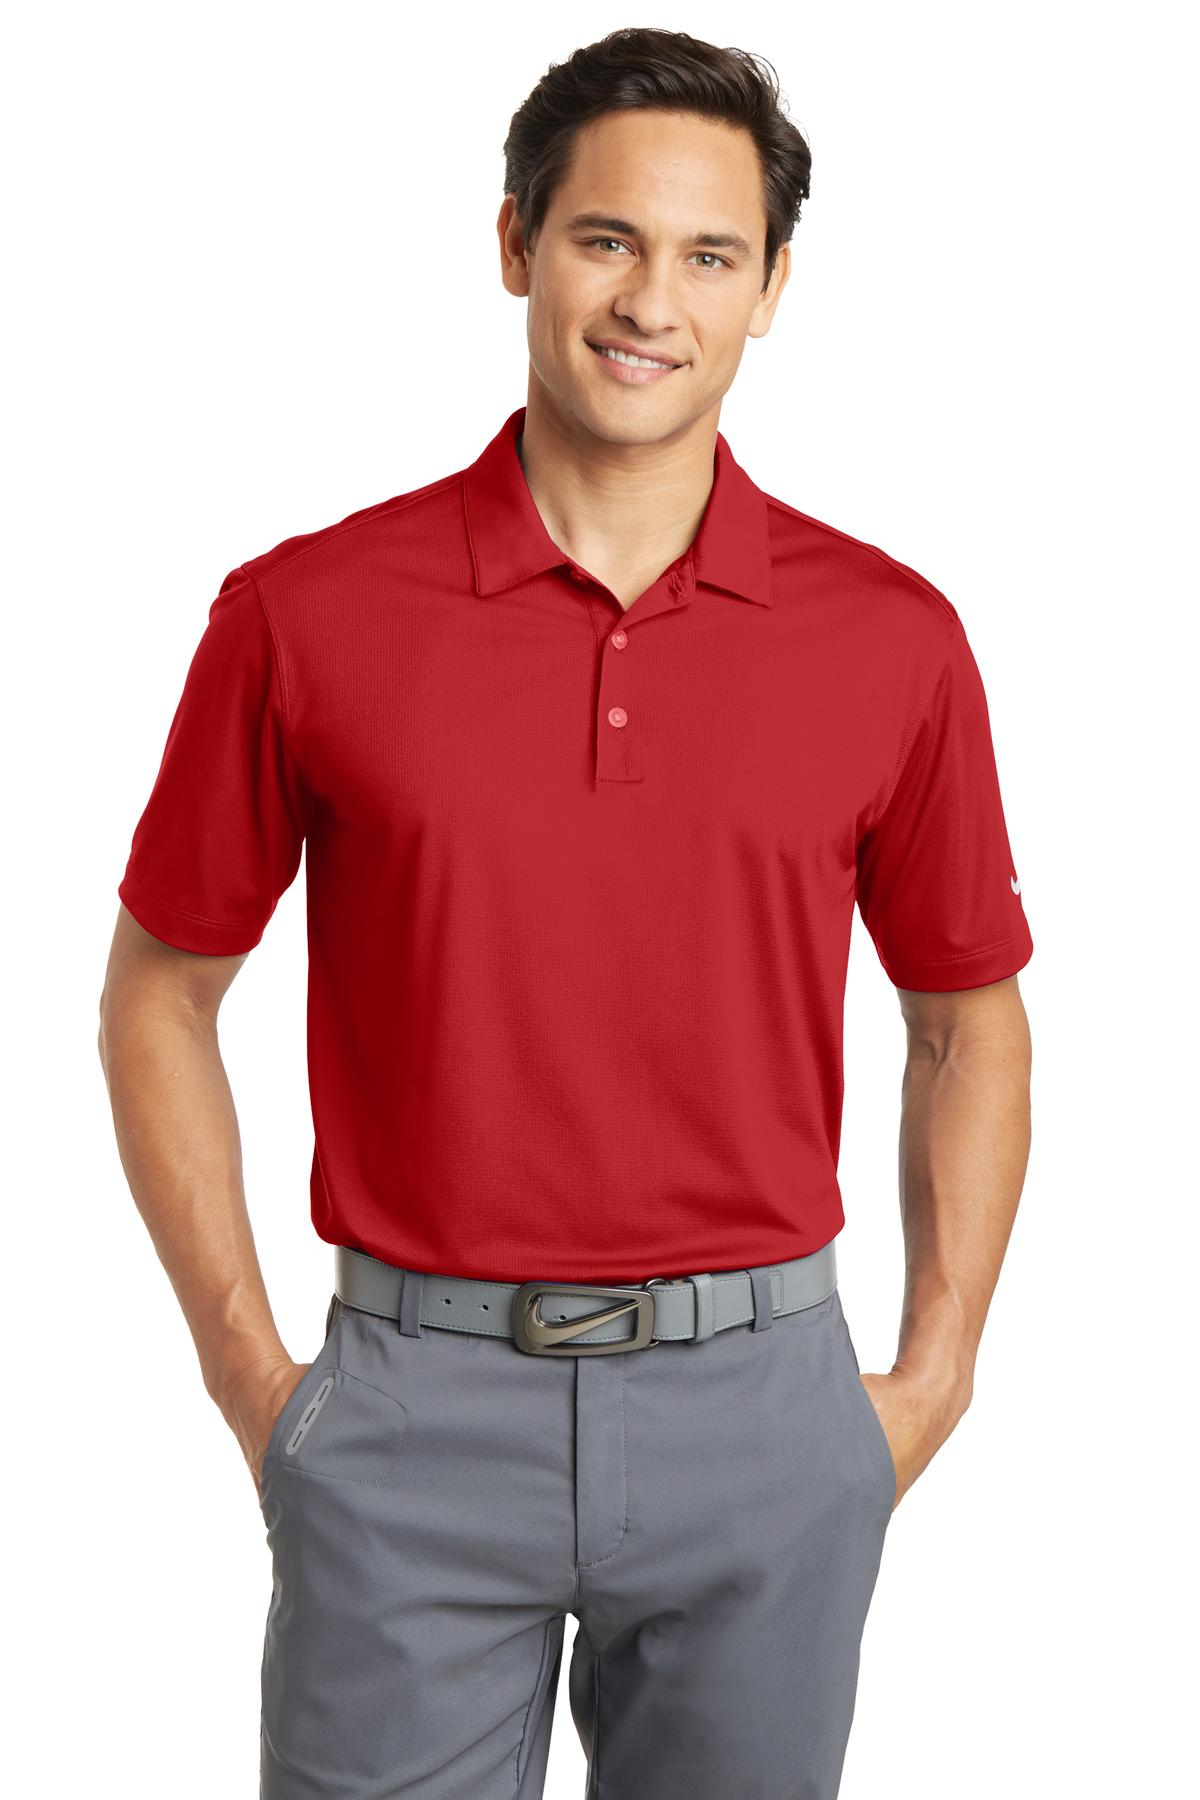 Nike Dri-FIT Vertical Mesh Polo. 637167 - University Red